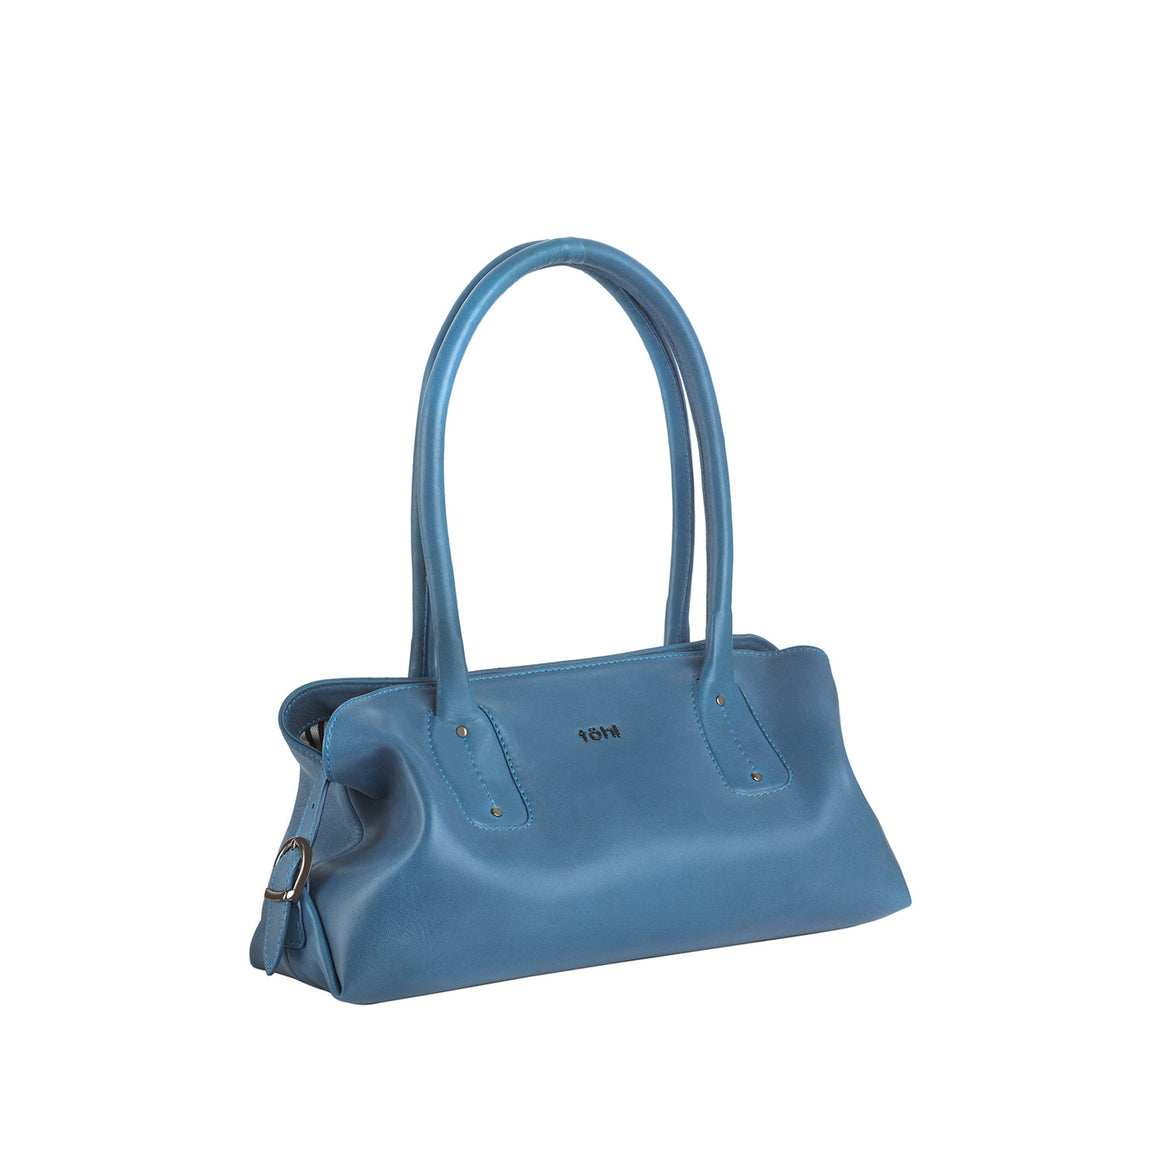 HH 0005 - TOHL OLIVIA WOMEN'S SHOULDER BAG - AZURE